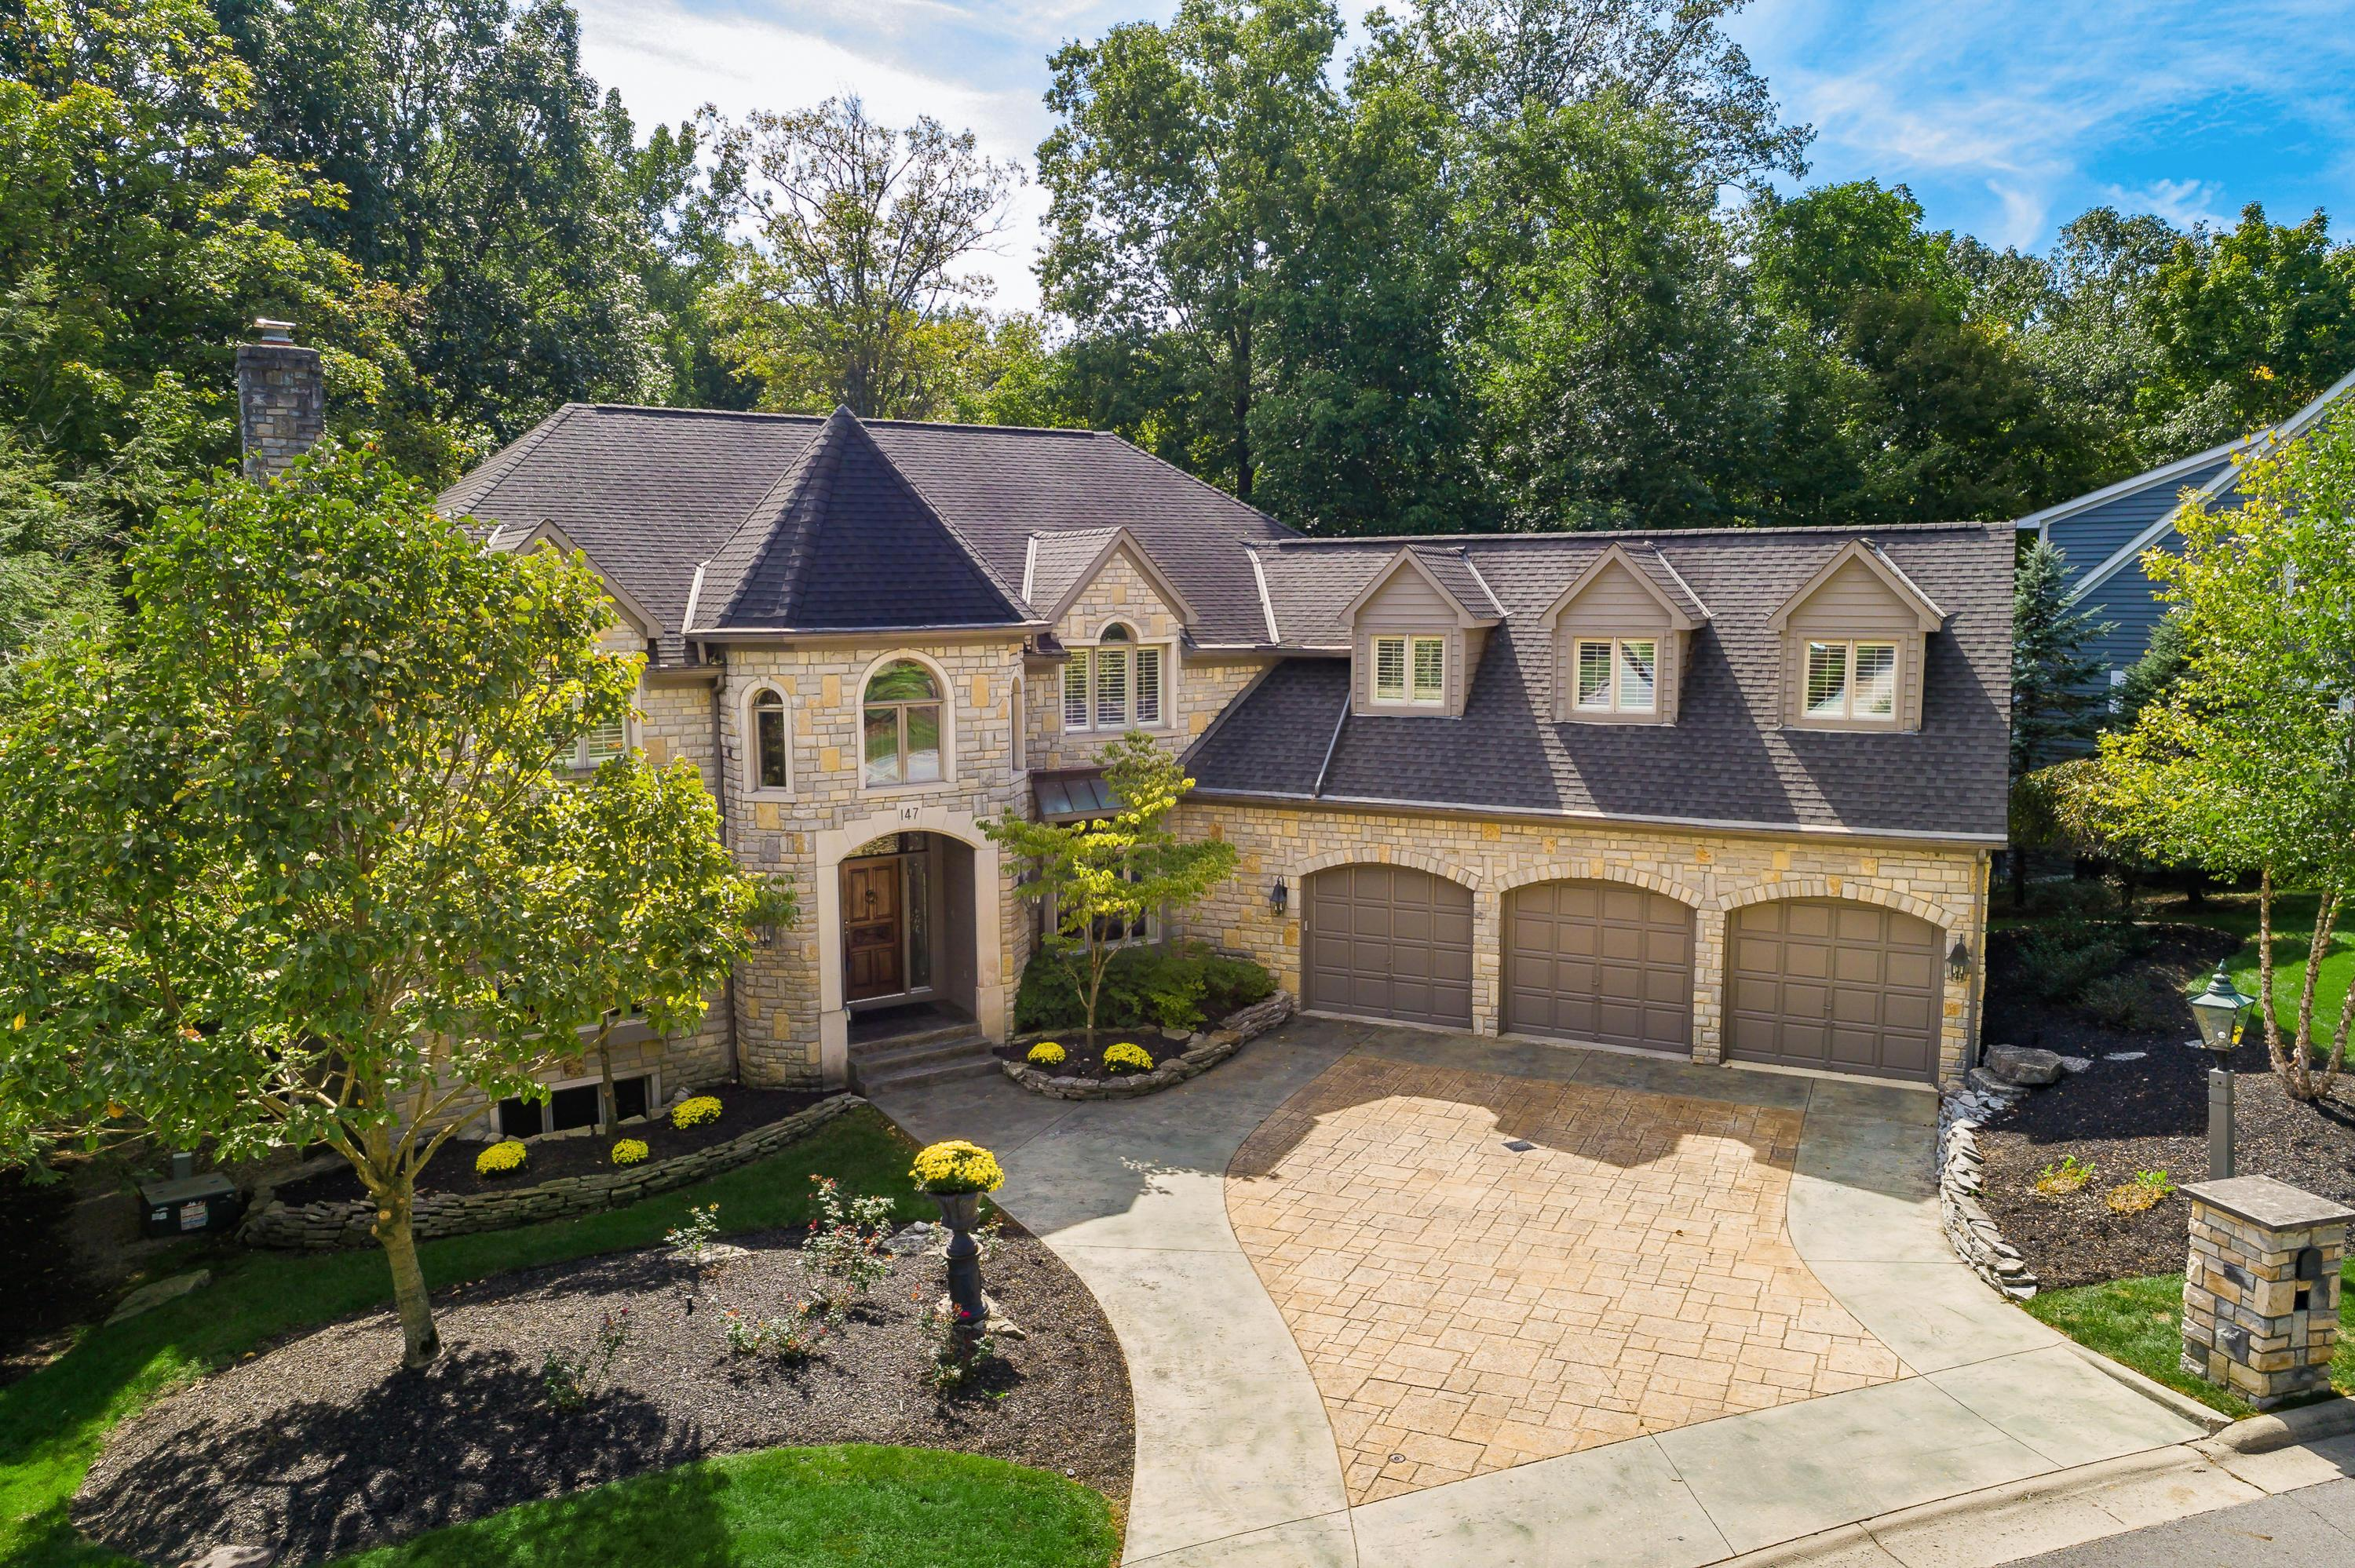 147 Lake Bluff Drive, Columbus, Ohio 43235, 6 Bedrooms Bedrooms, ,5 BathroomsBathrooms,Residential,For Sale,Lake Bluff,220020405